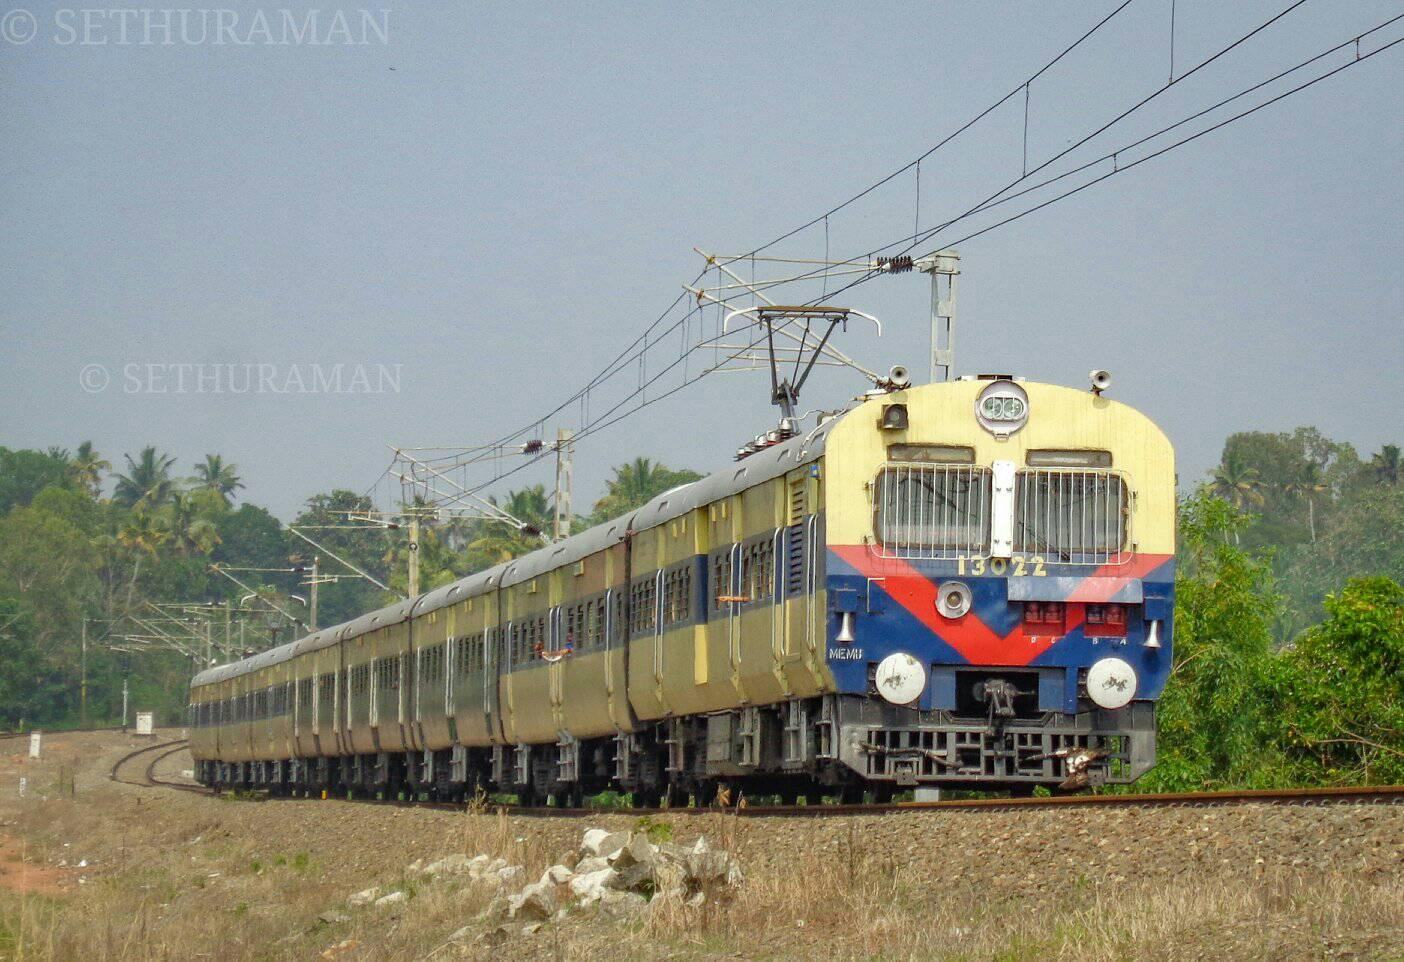 What is the difference between MEMU and DEMU trains